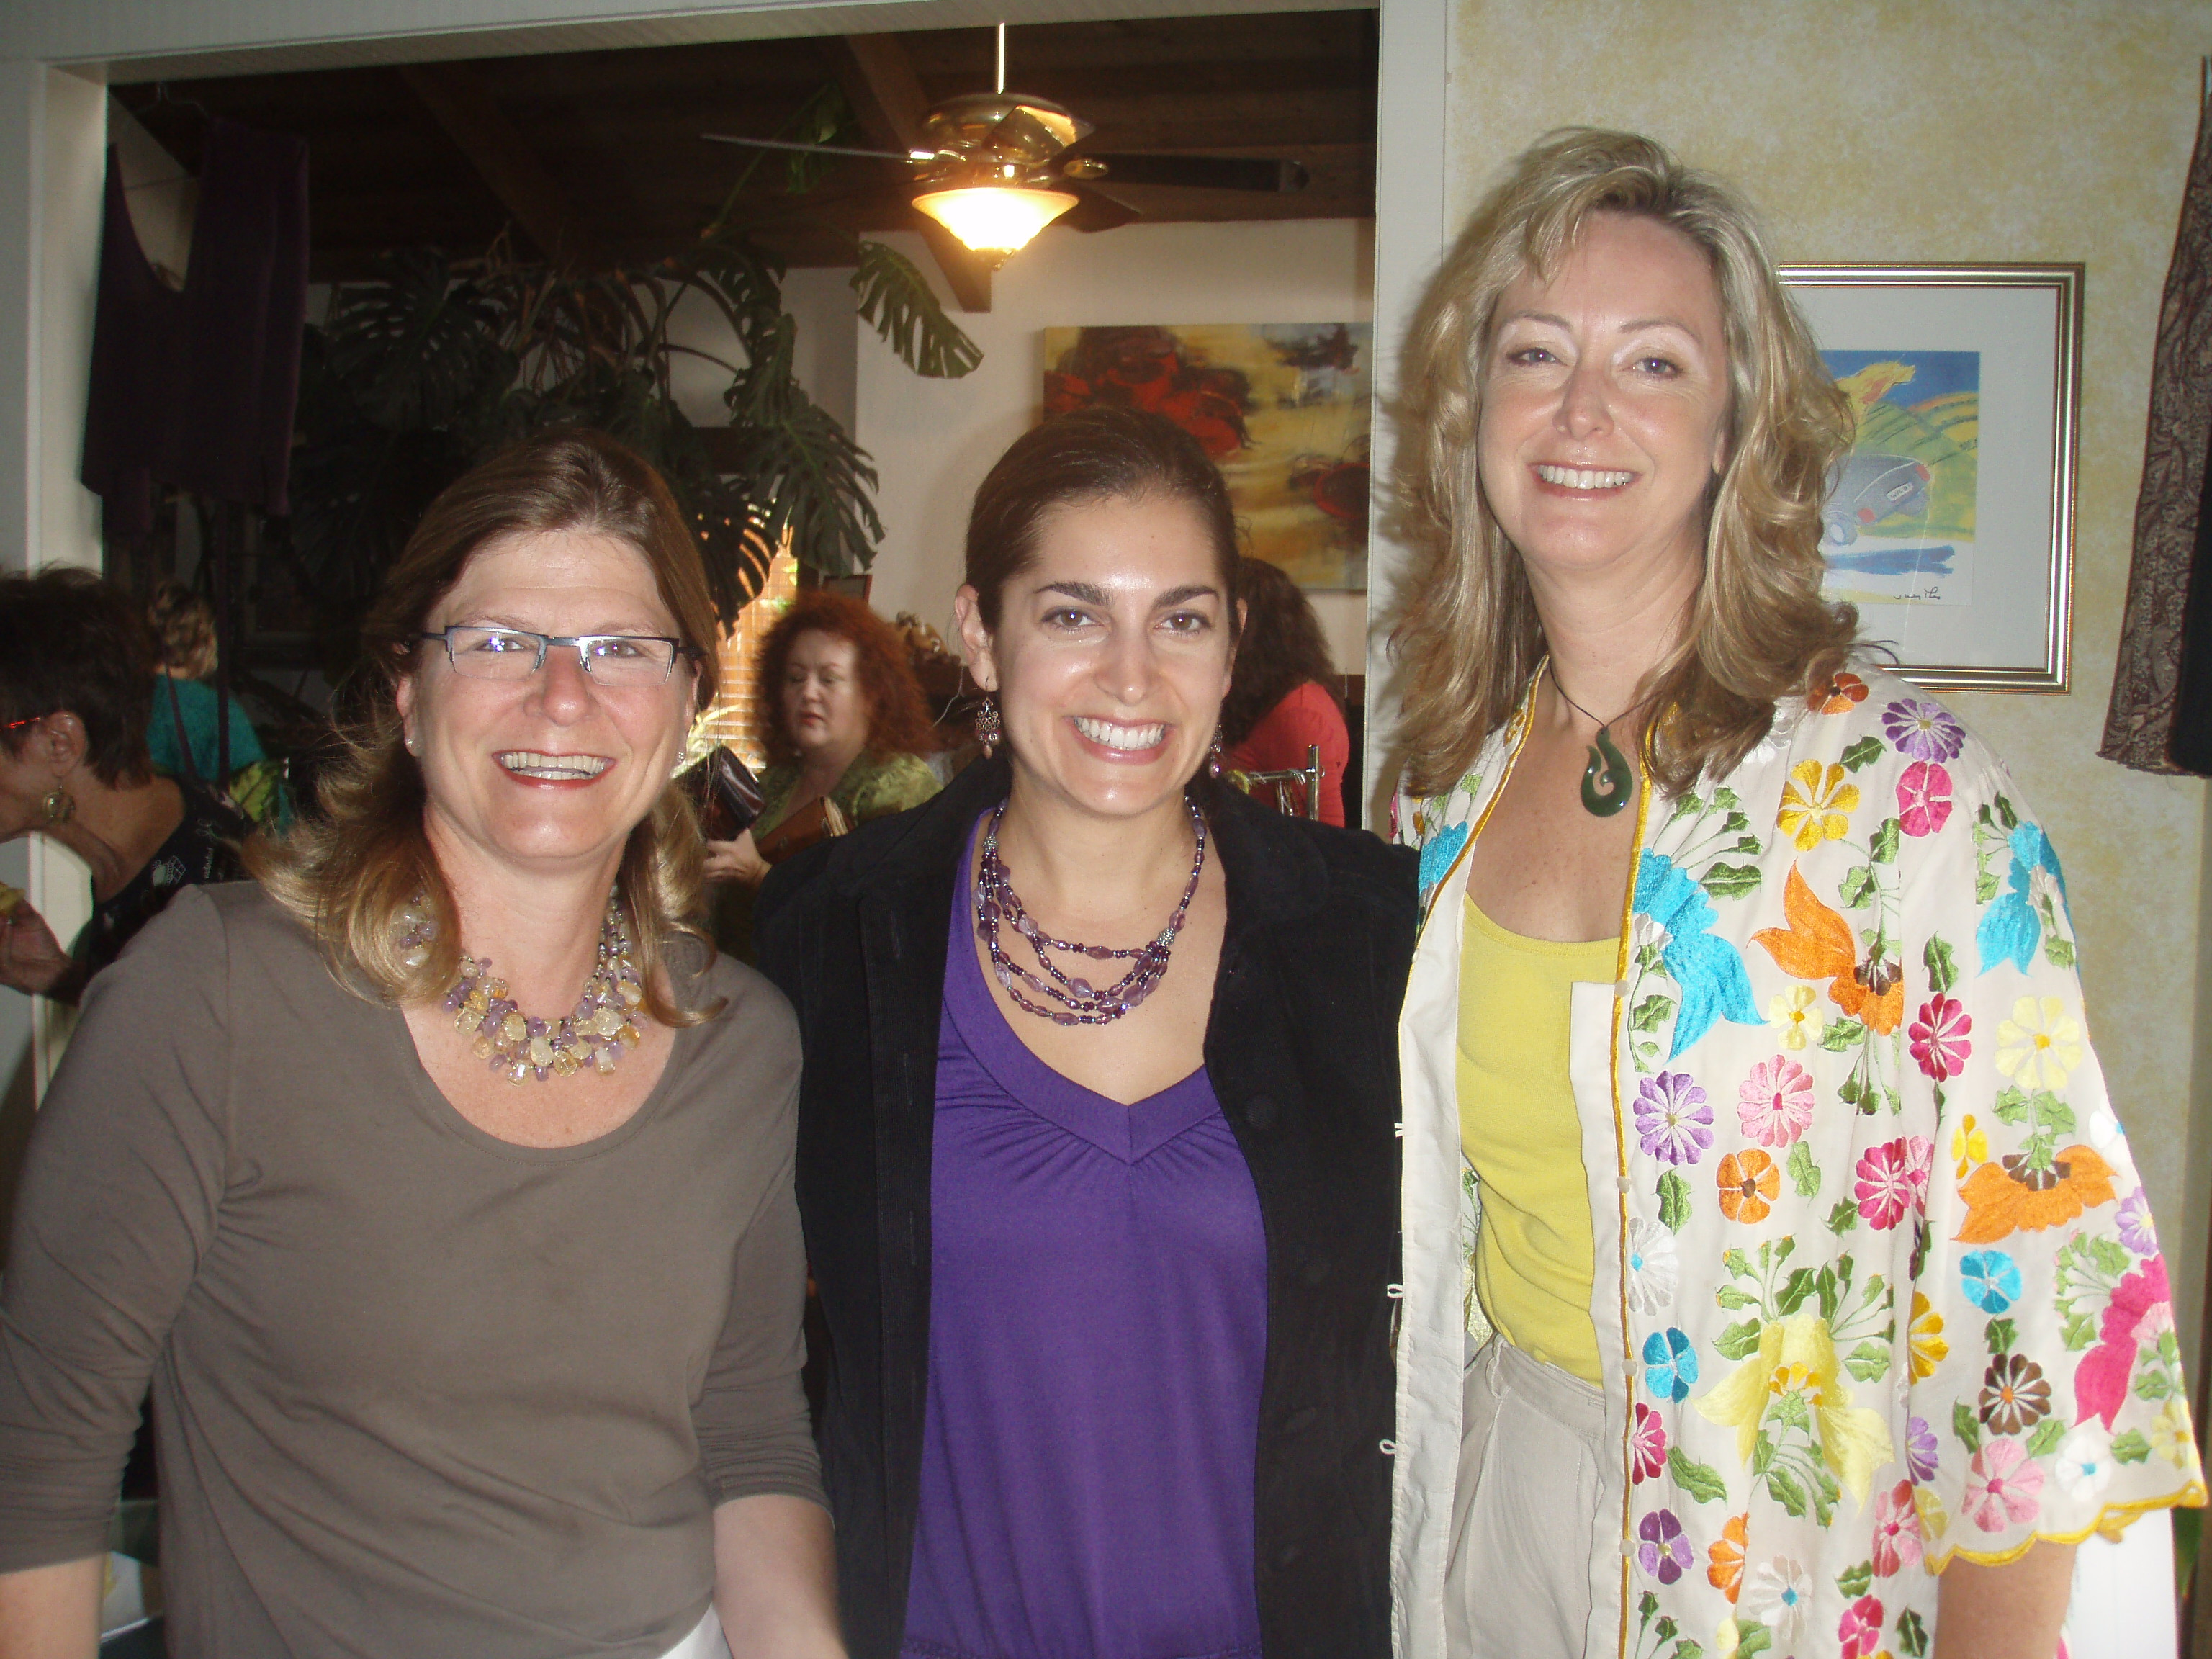 Deirdre Sheerin, Executive Director of Image for Success, ABC Producer Janel Andronico, and moi